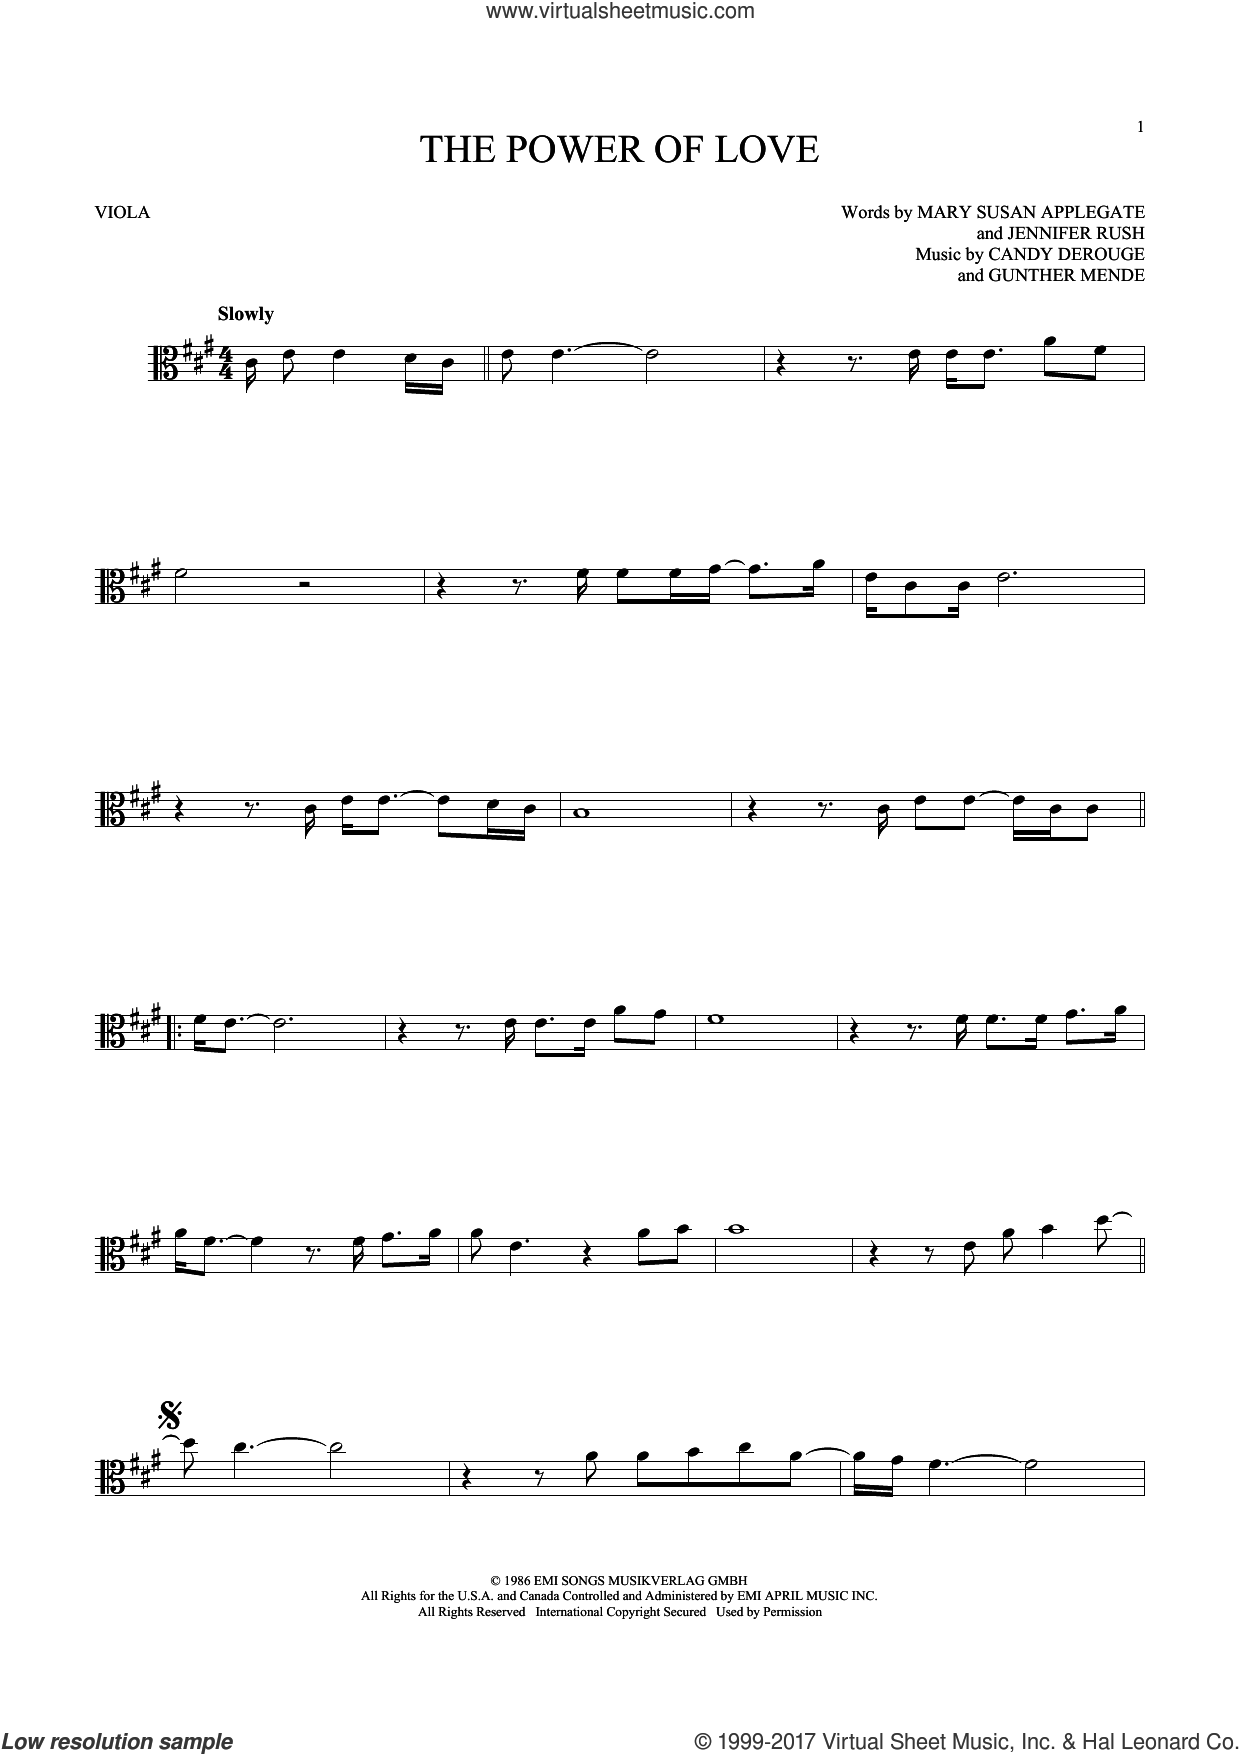 The Power Of Love sheet music for viola solo by Air Supply, Celine Dion, Laura Brannigan, Candy Derouge, Gunther Mende, Jennifer Rush and Mary Susan Applegate, intermediate. Score Image Preview.